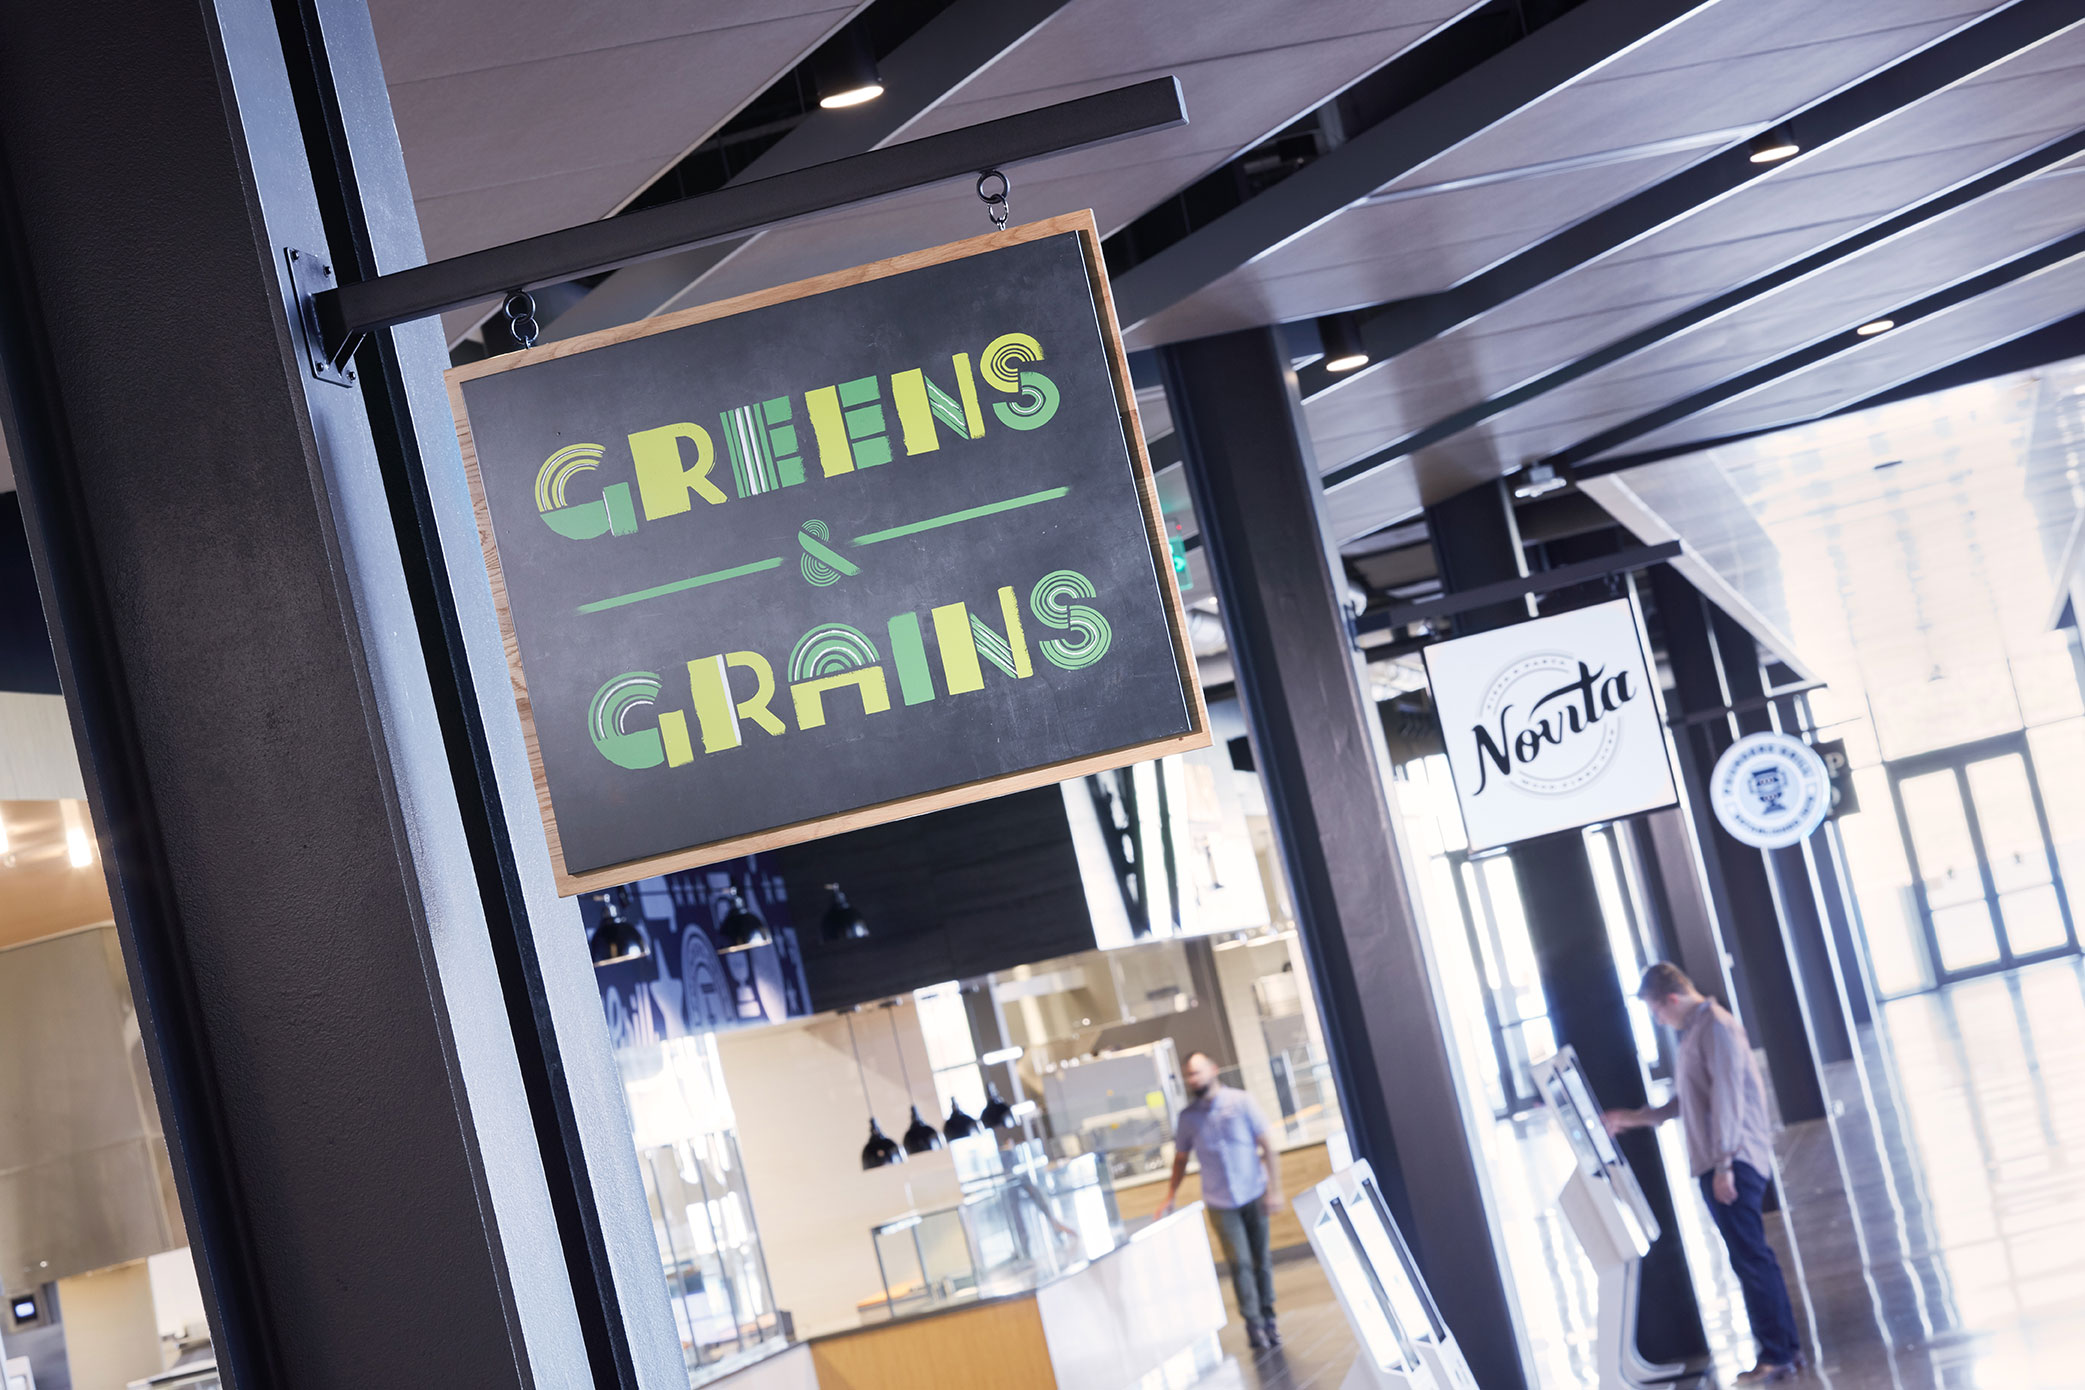 Greens & Grains - Environmental Design Kansas City